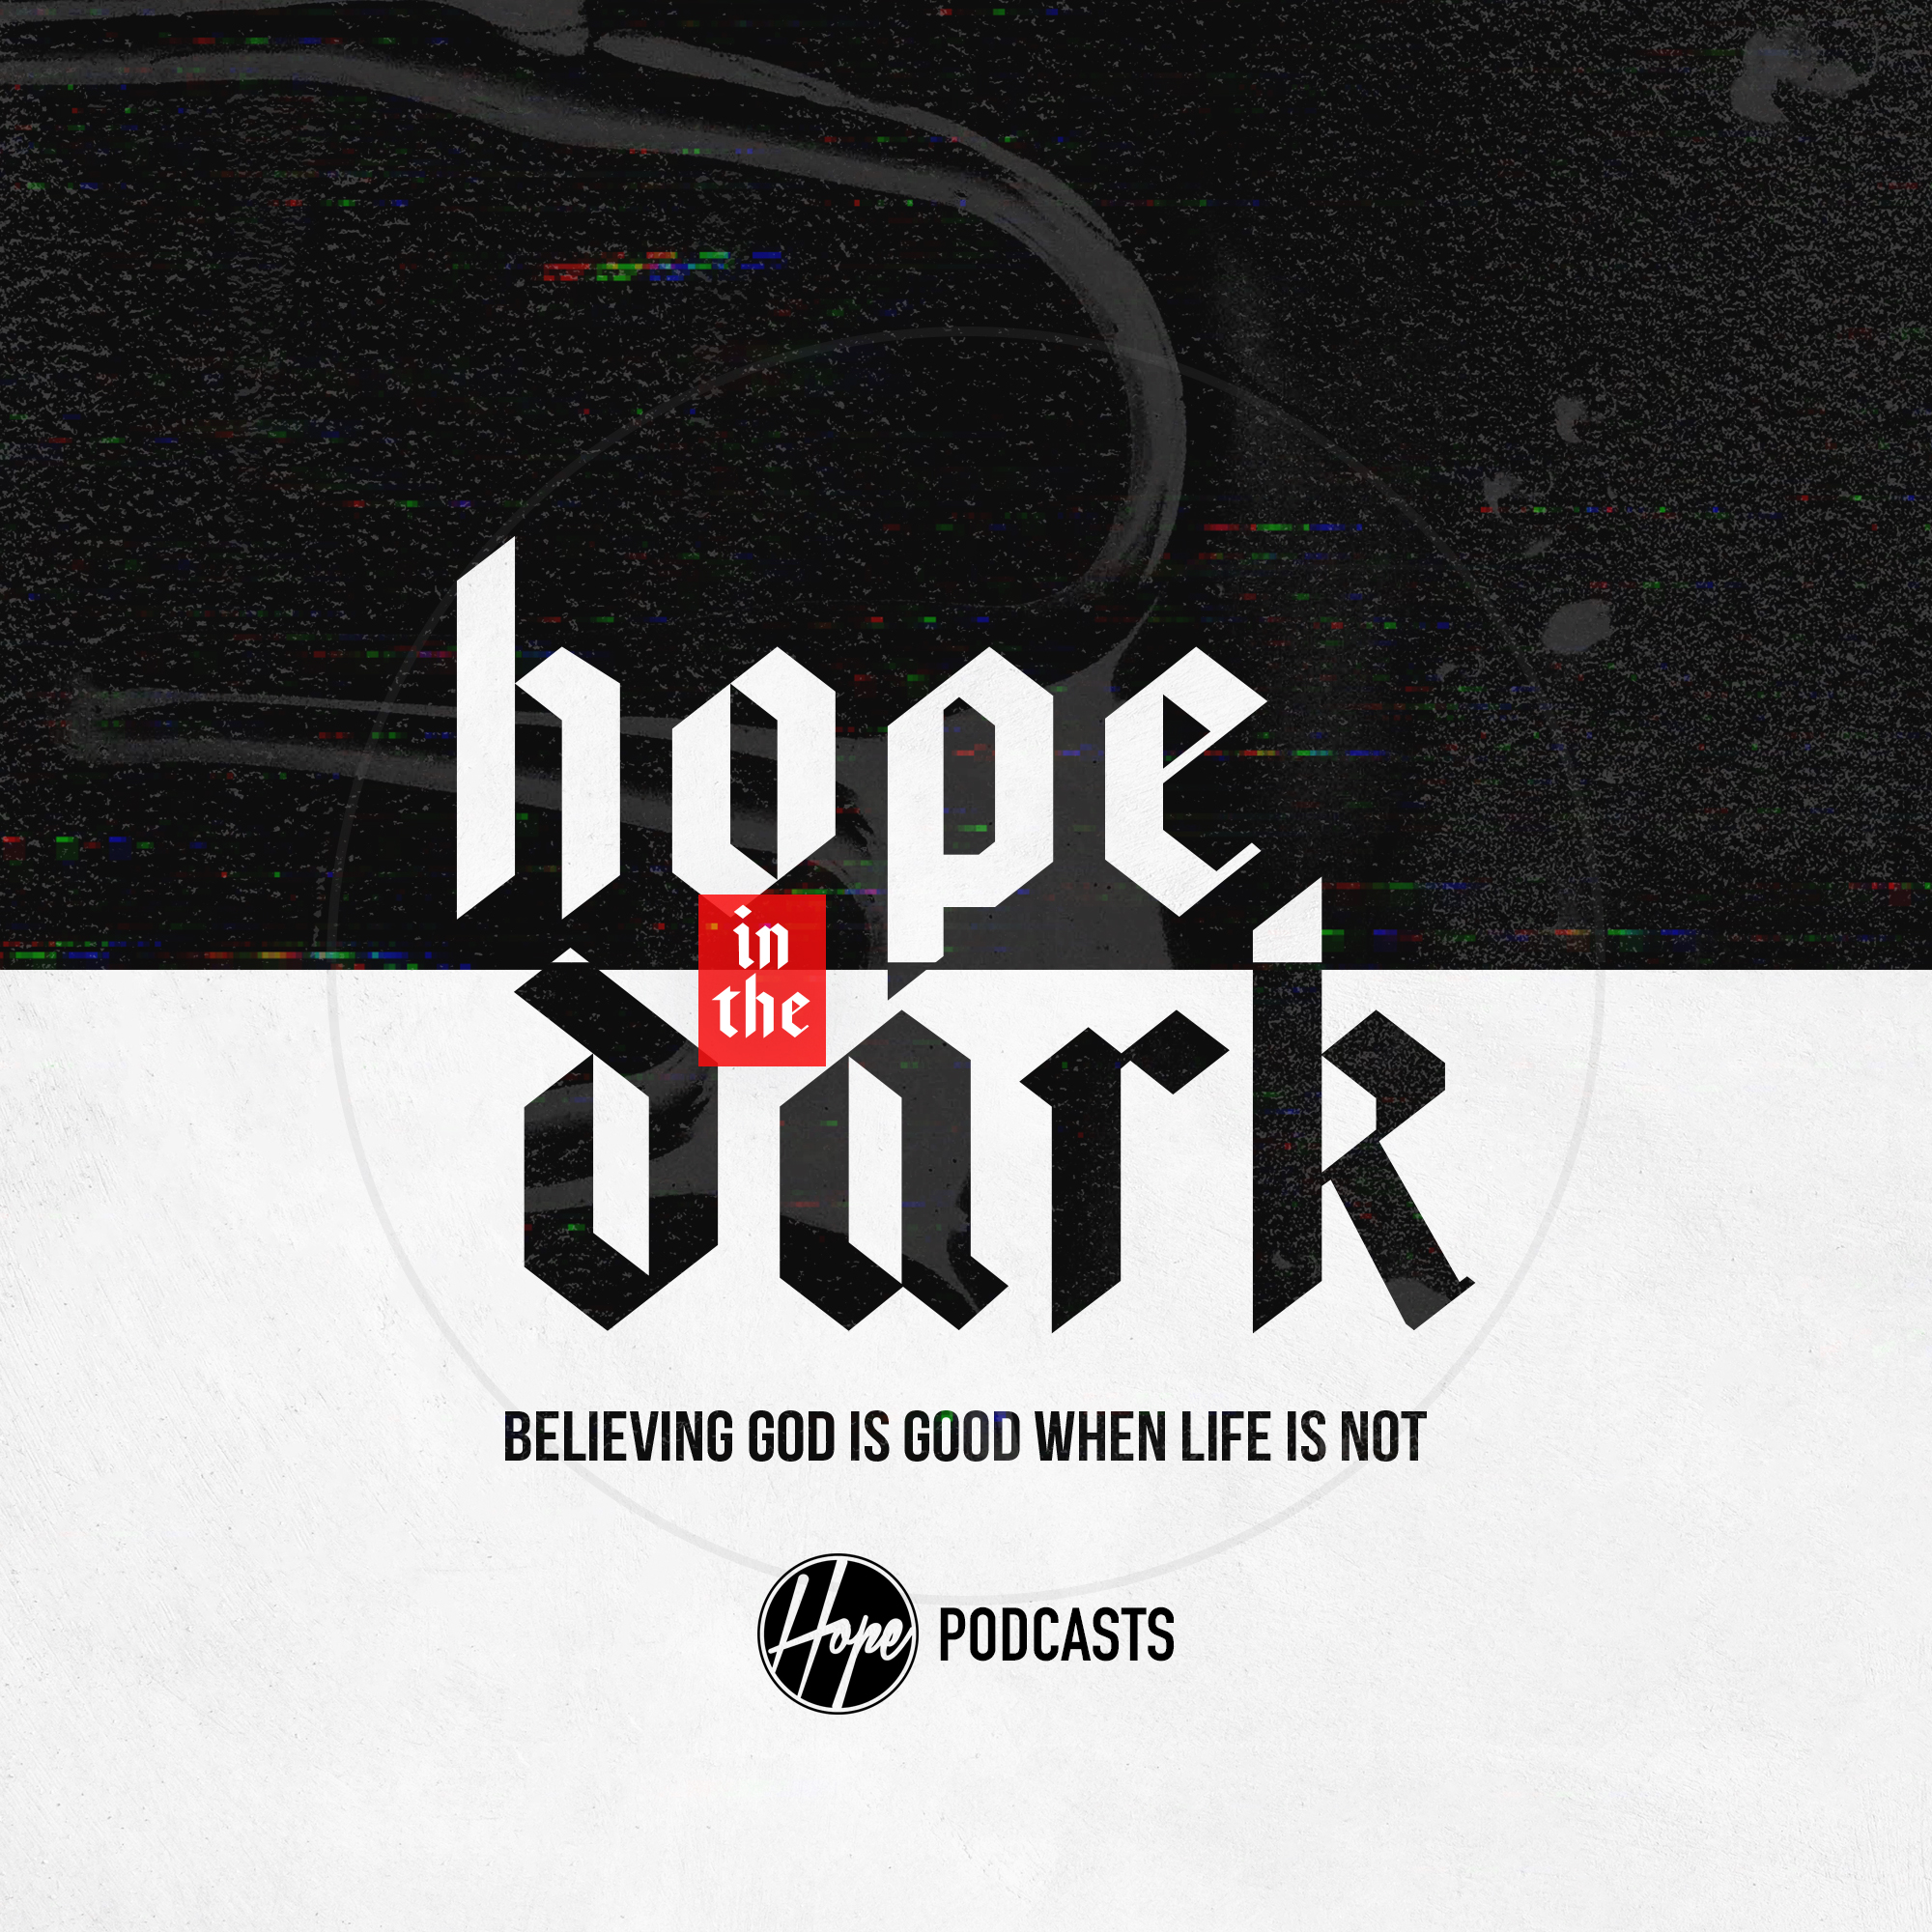 hope in dark podcast.jpg